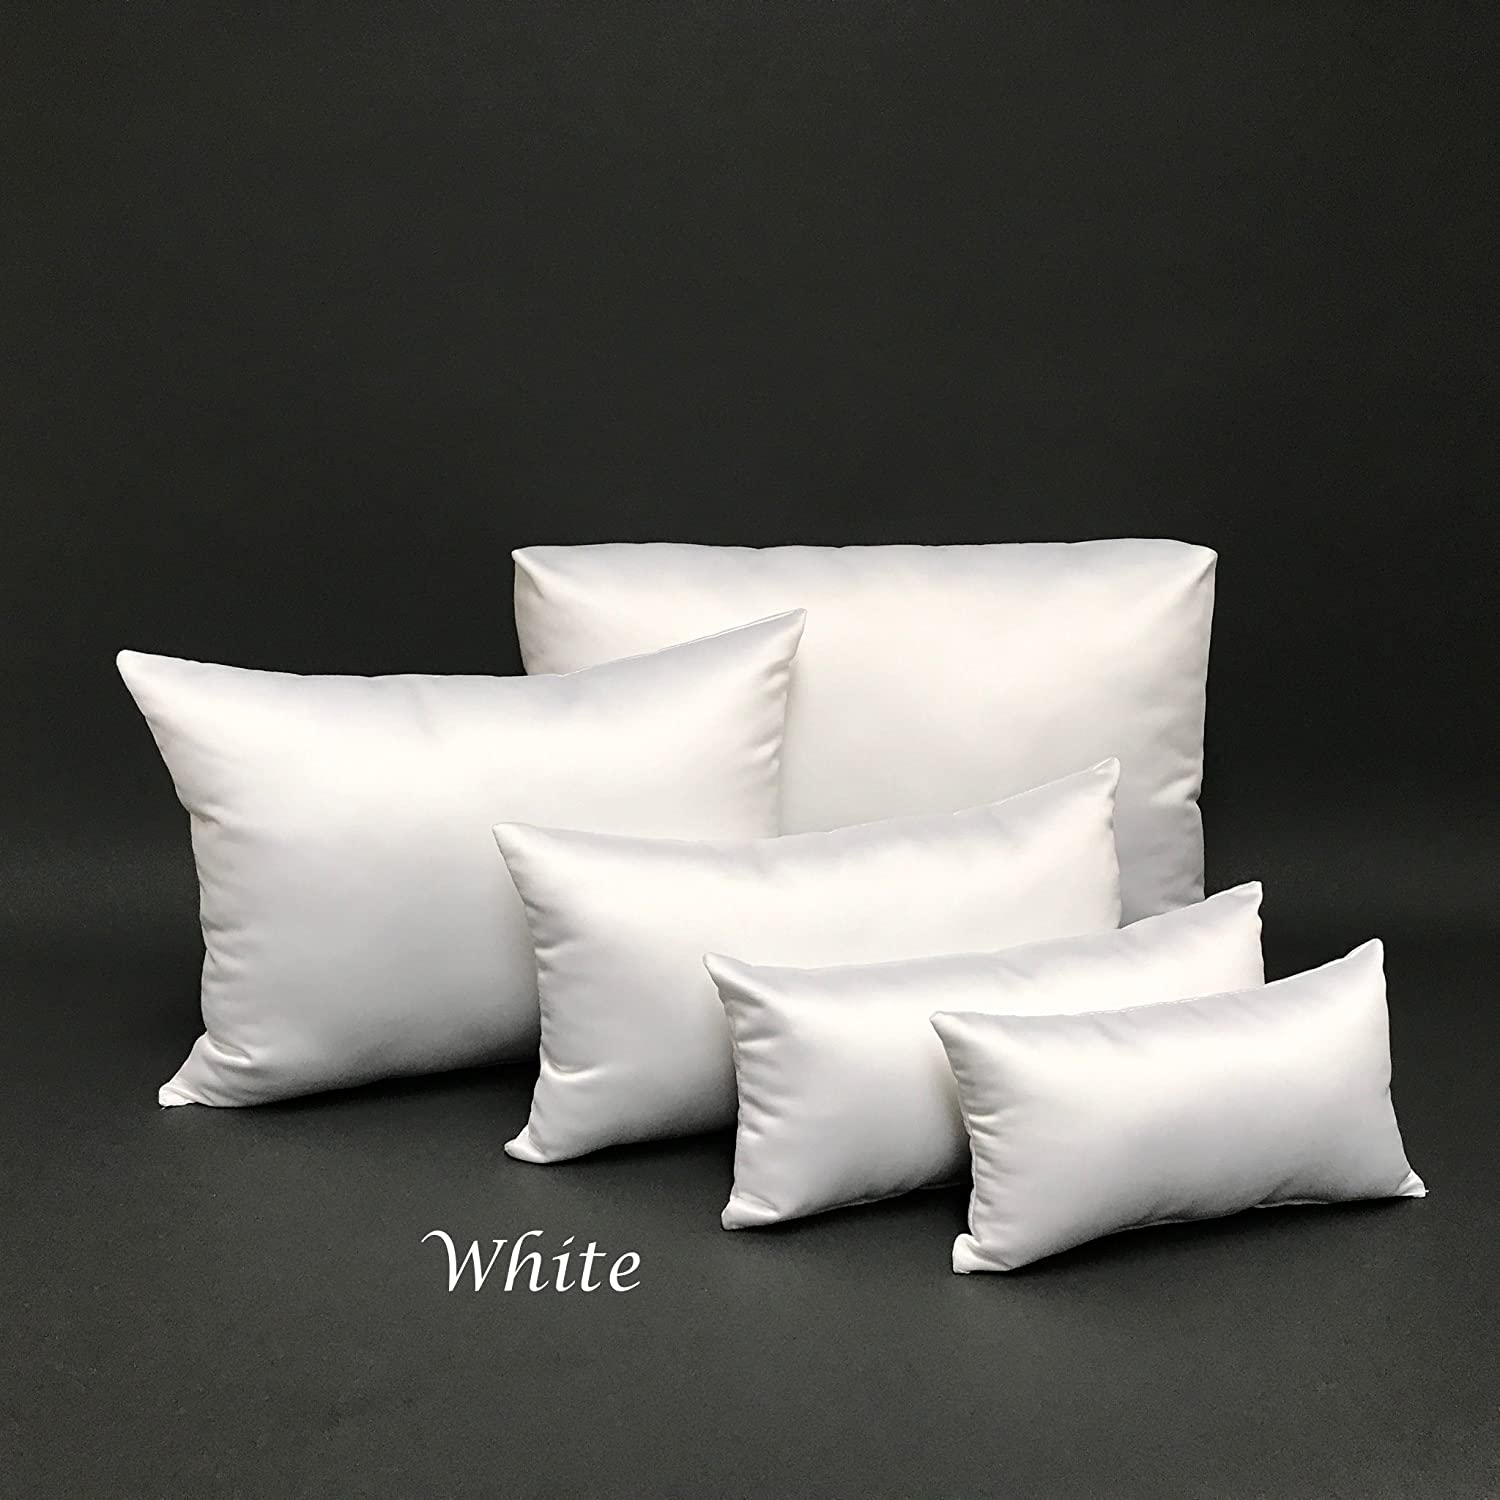 PURSE PILLOW Starter Set: Satin White, Comes in 4,5 and 9 Piece New Colors and Unlimited Quantities 501